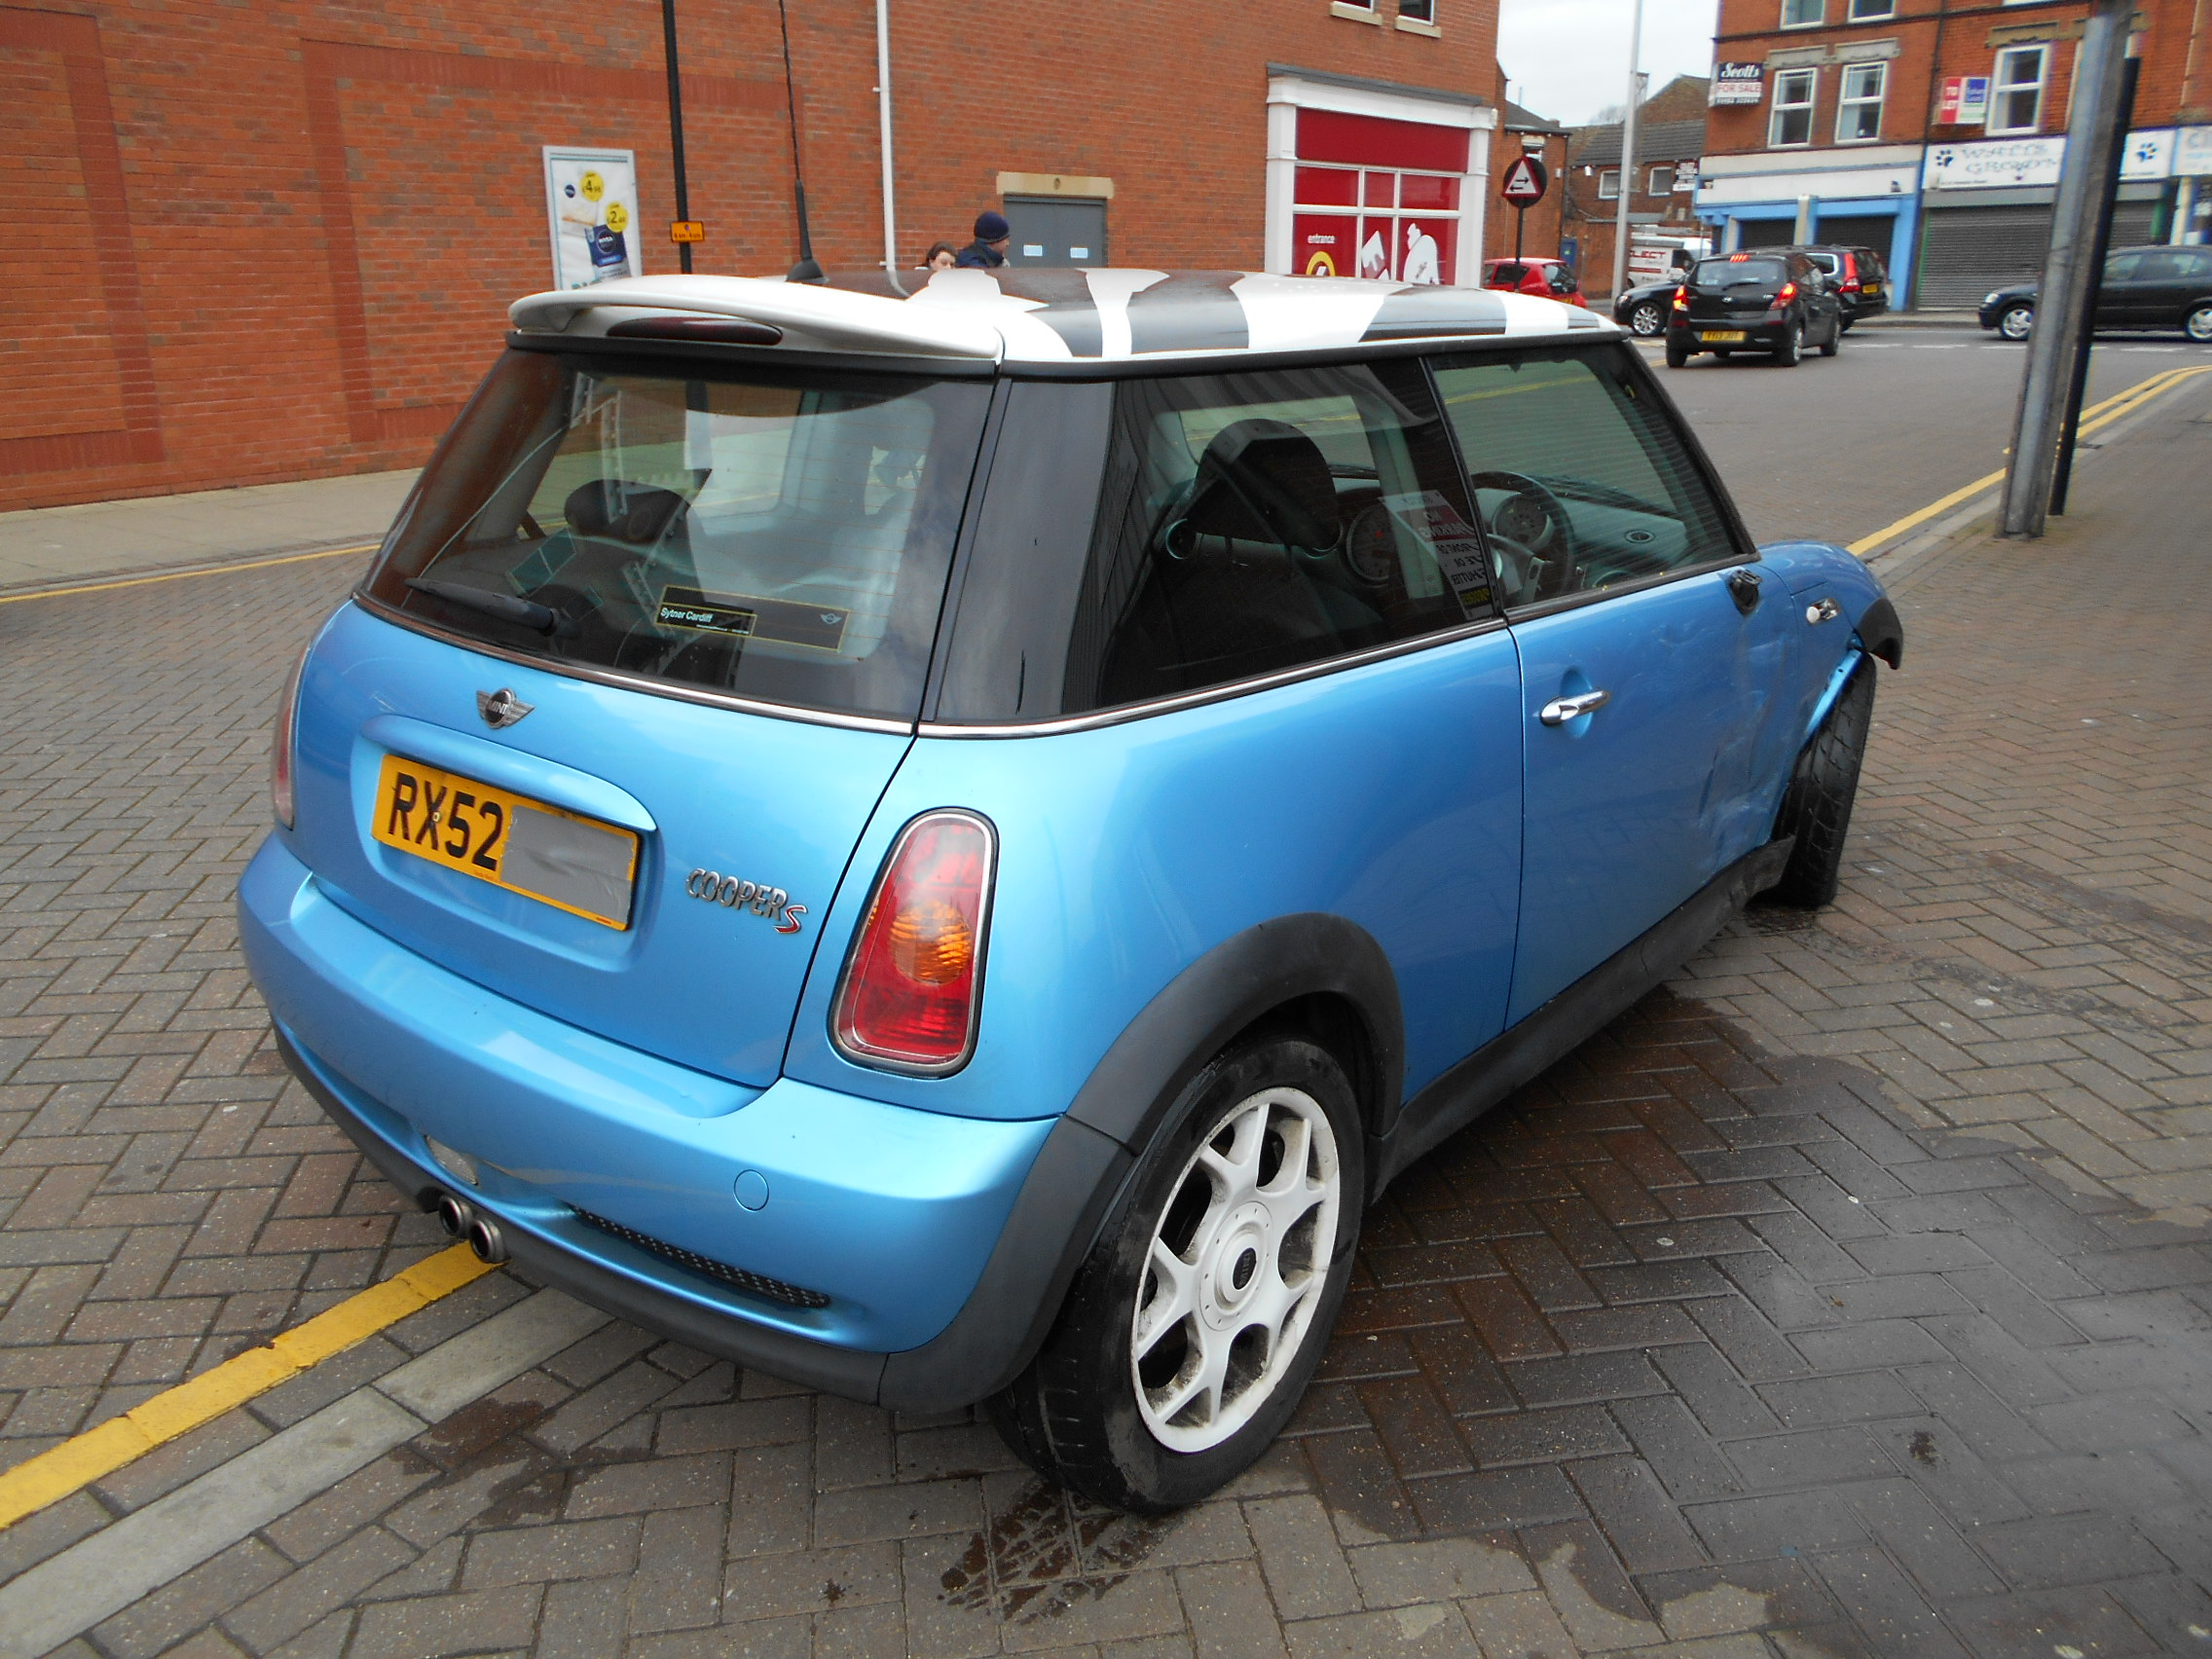 02 Blue 1.6 BMW Mini Cooper S - 4